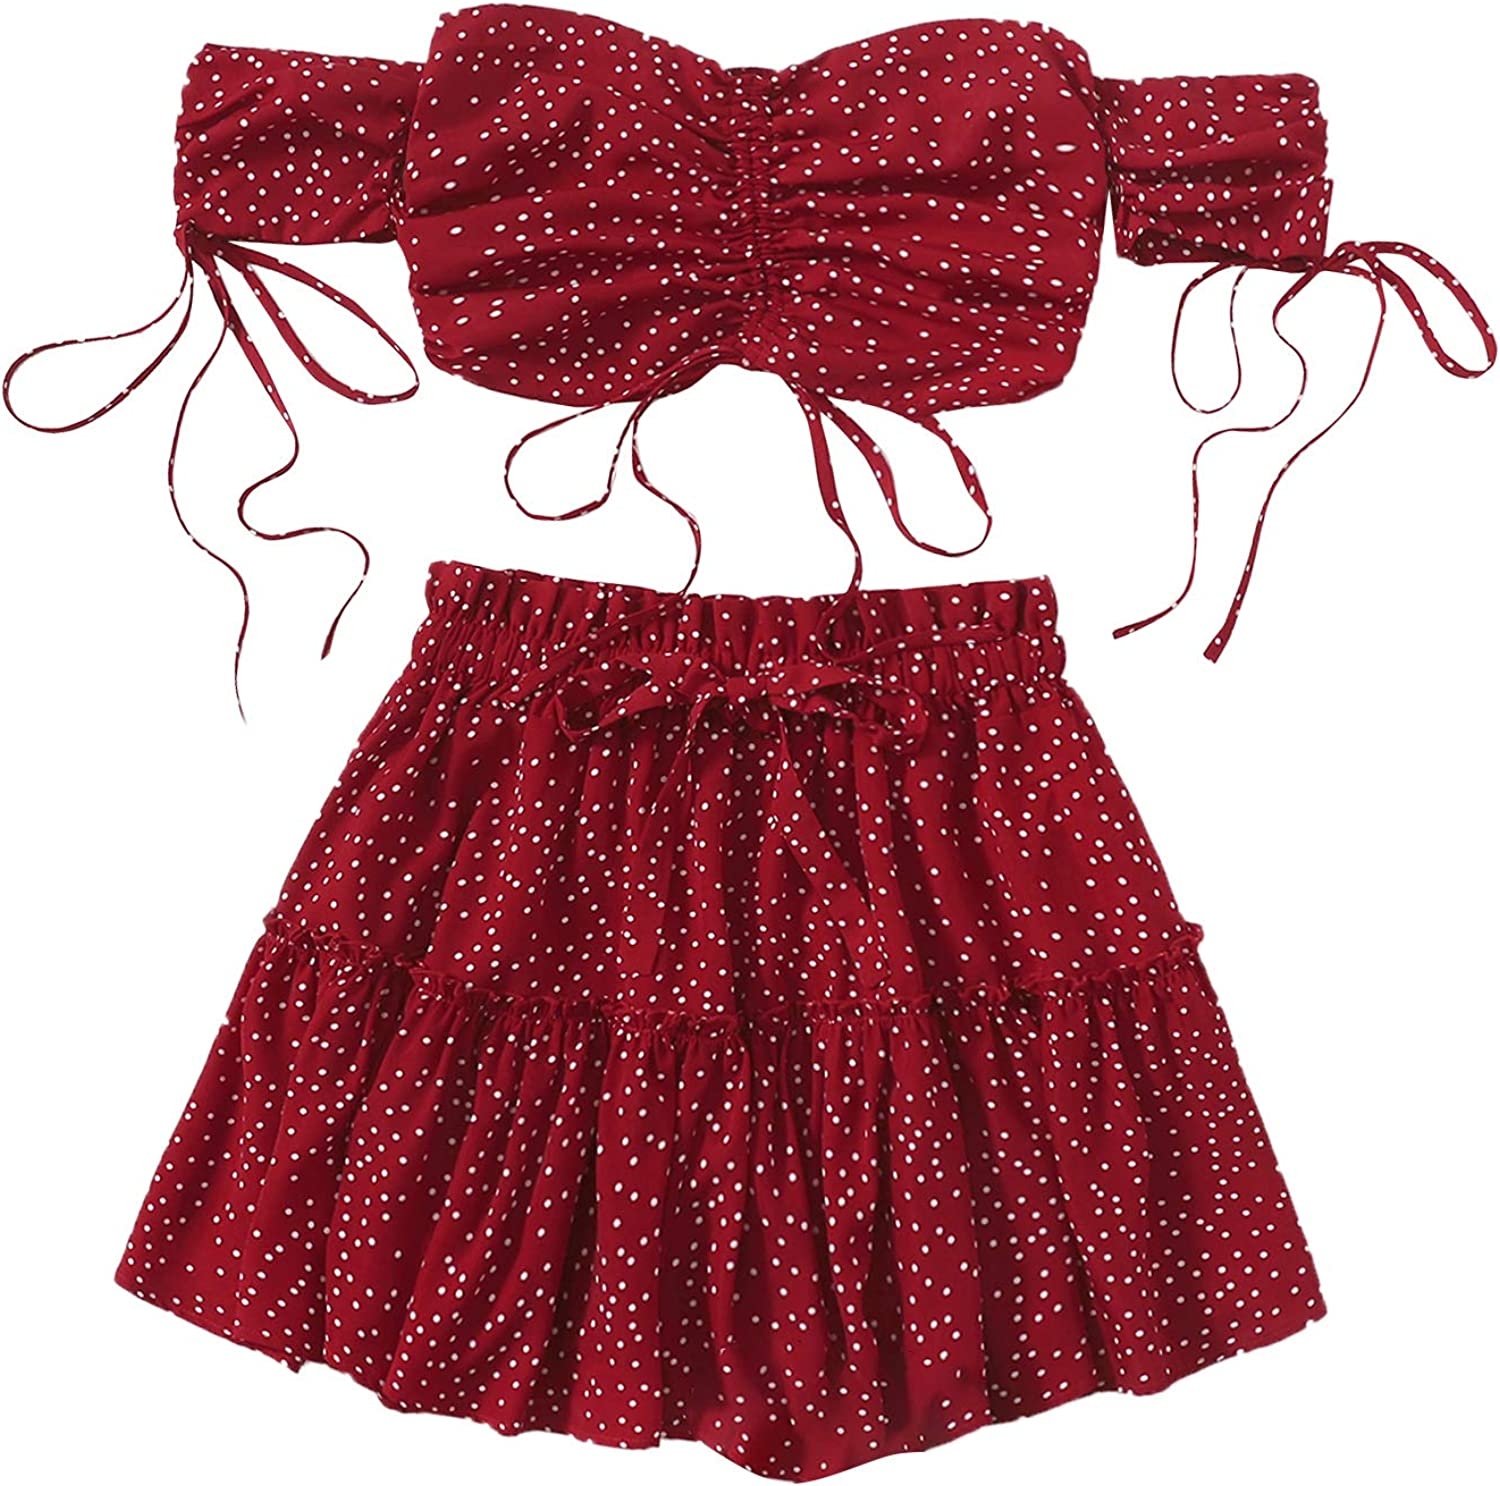 Milumia Women Boho 2PCS Outfit Off Shoulder Ditsy Floral Crop Top and Flared Skirt Set Burgundy Medium